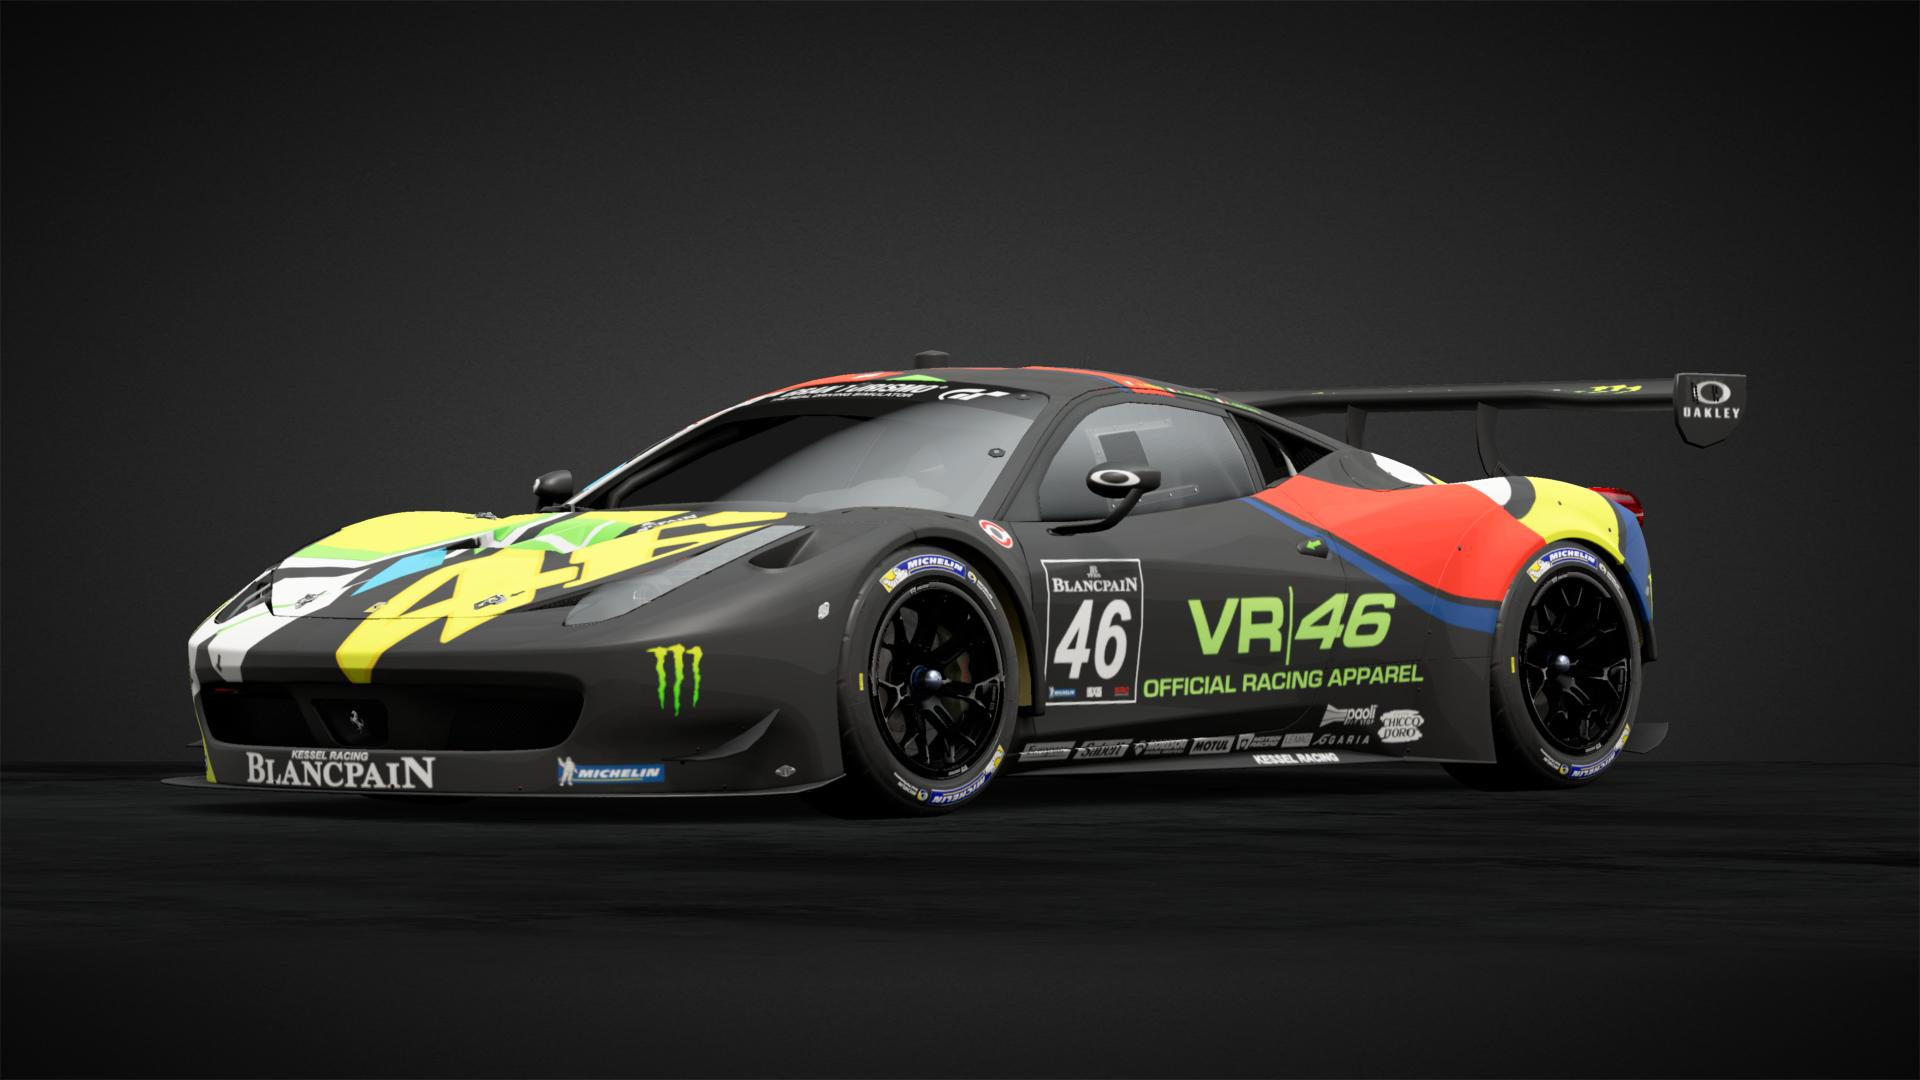 458 Gt3 Vr46 Car Livery By Dcassa Community Gran Turismo Sport